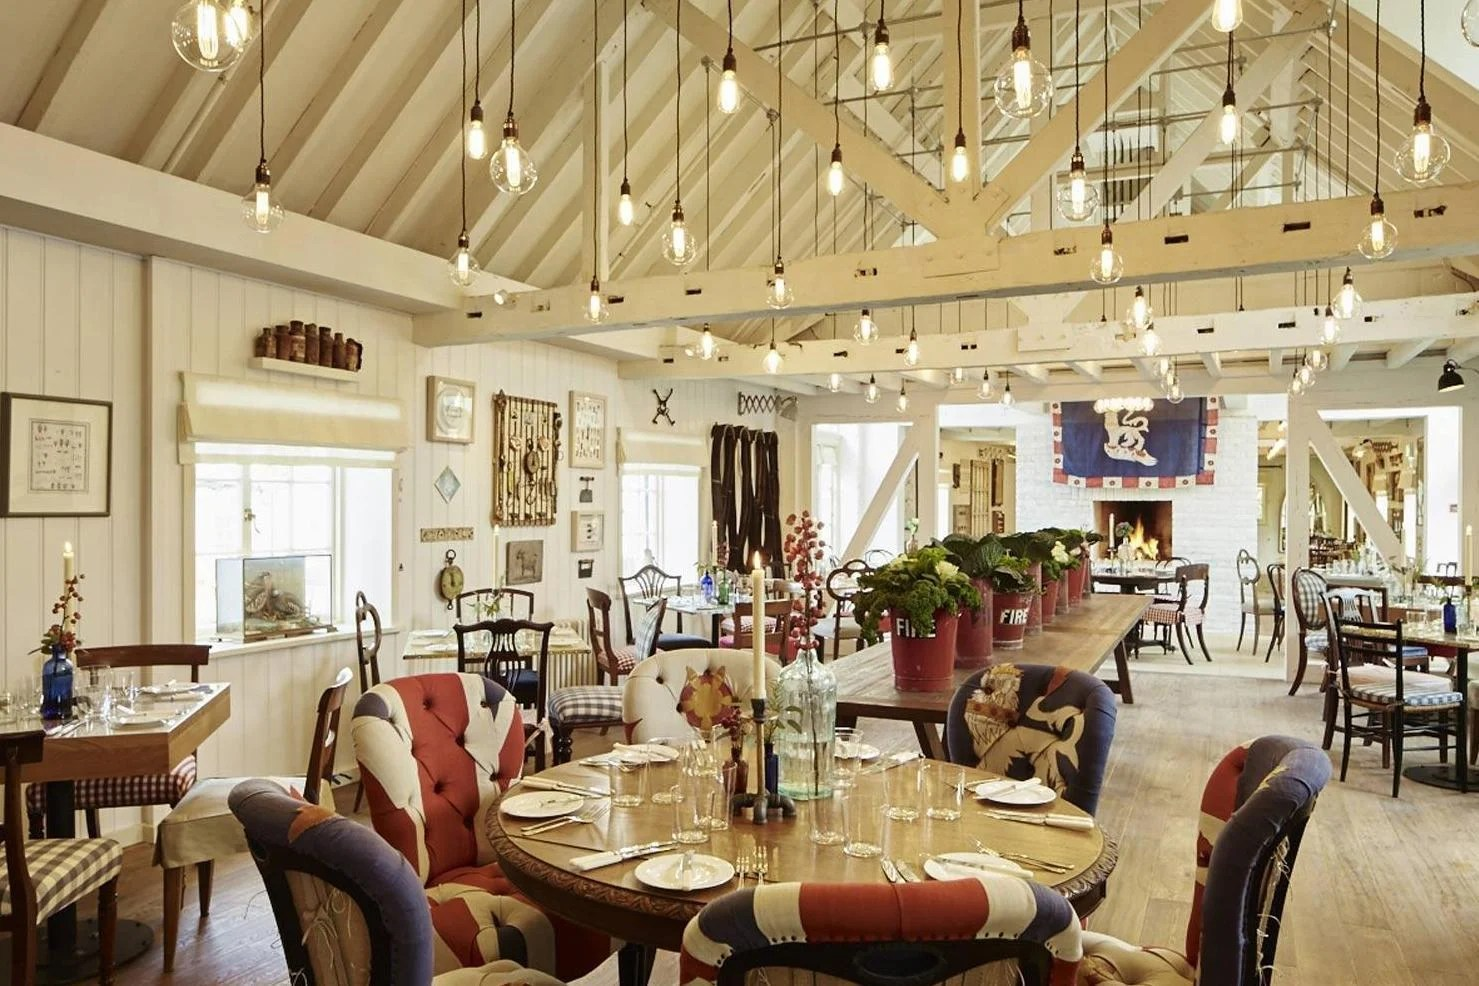 The Goodwood Hotel in Chichester opens farm to table restaurant  London Evening Standard